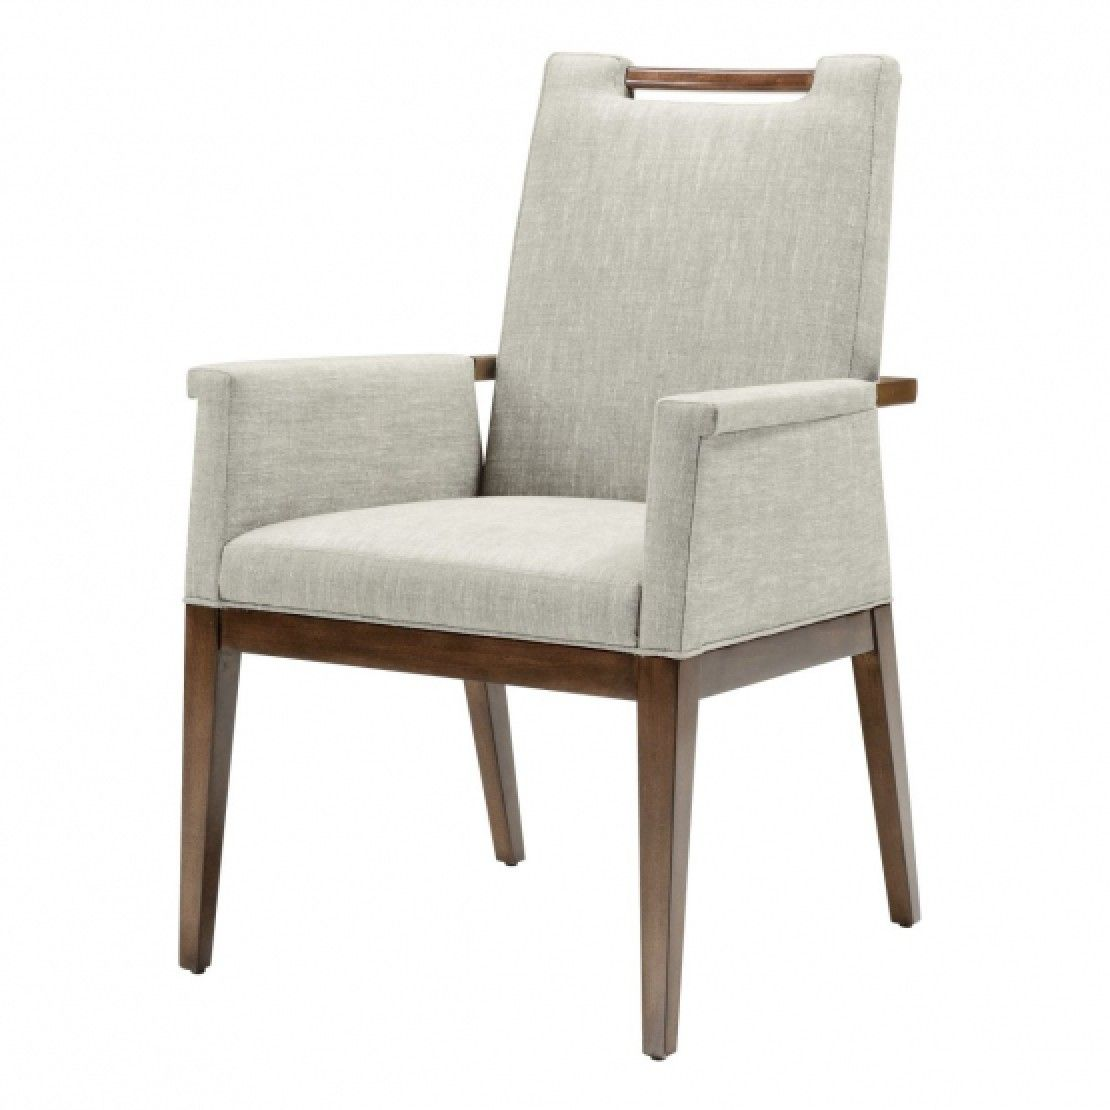 belle meade signature liv luxe danish dining arm chair  danishes  - belle meade signature liv luxe danish dining arm chair